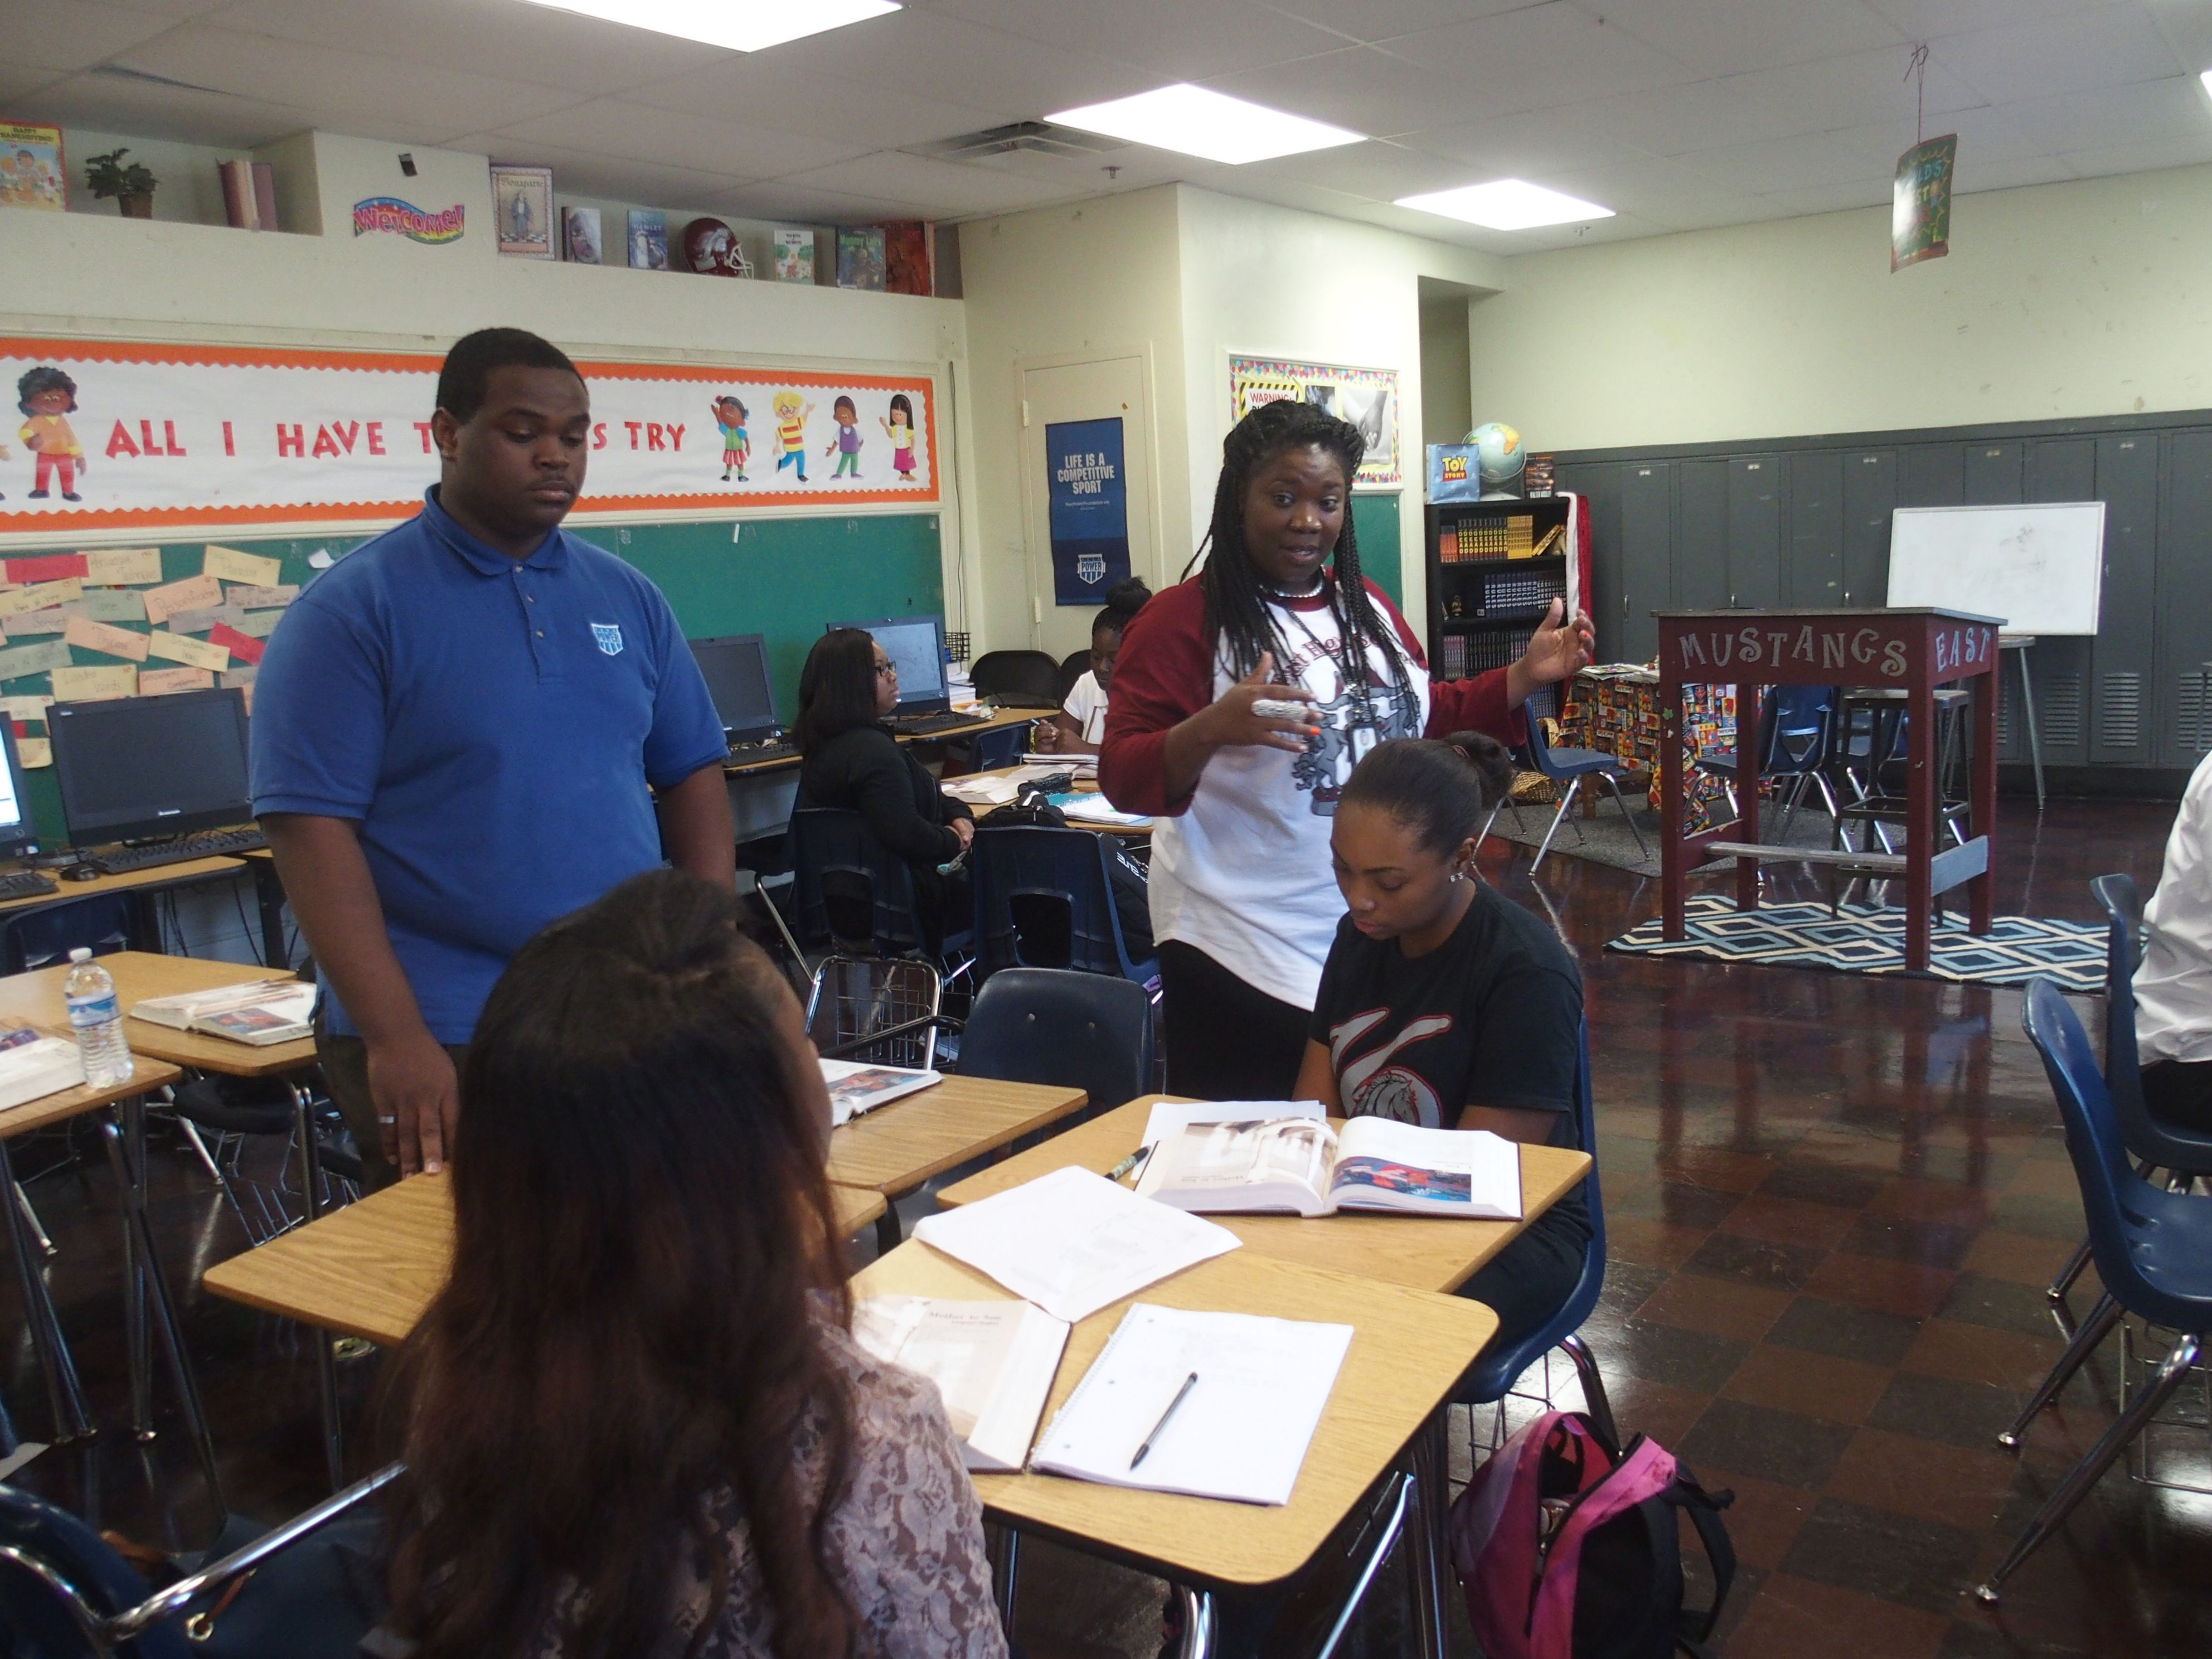 Teacher Meah King (center) introduces curriculum to her students on Monday on the first day of class at East High School in Memphis.